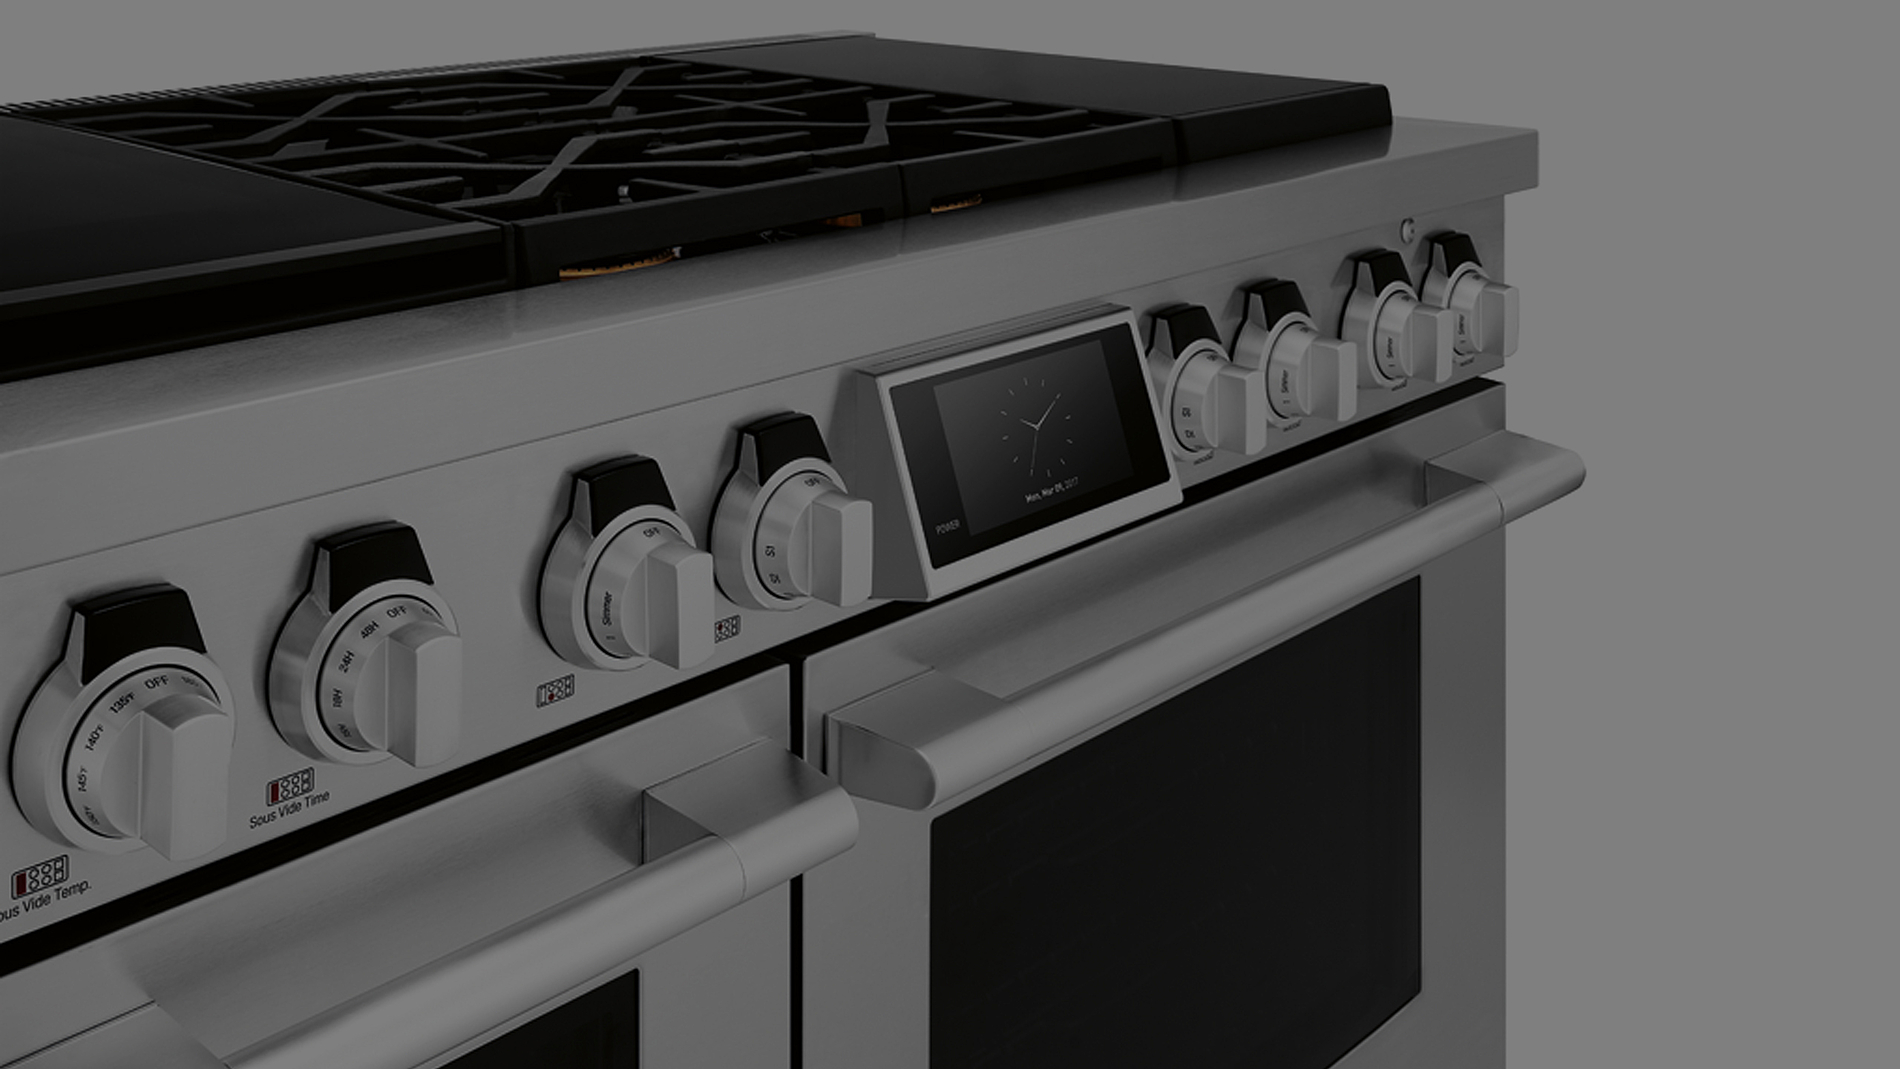 Cooking with style: awarded kitchen products - Red Dot